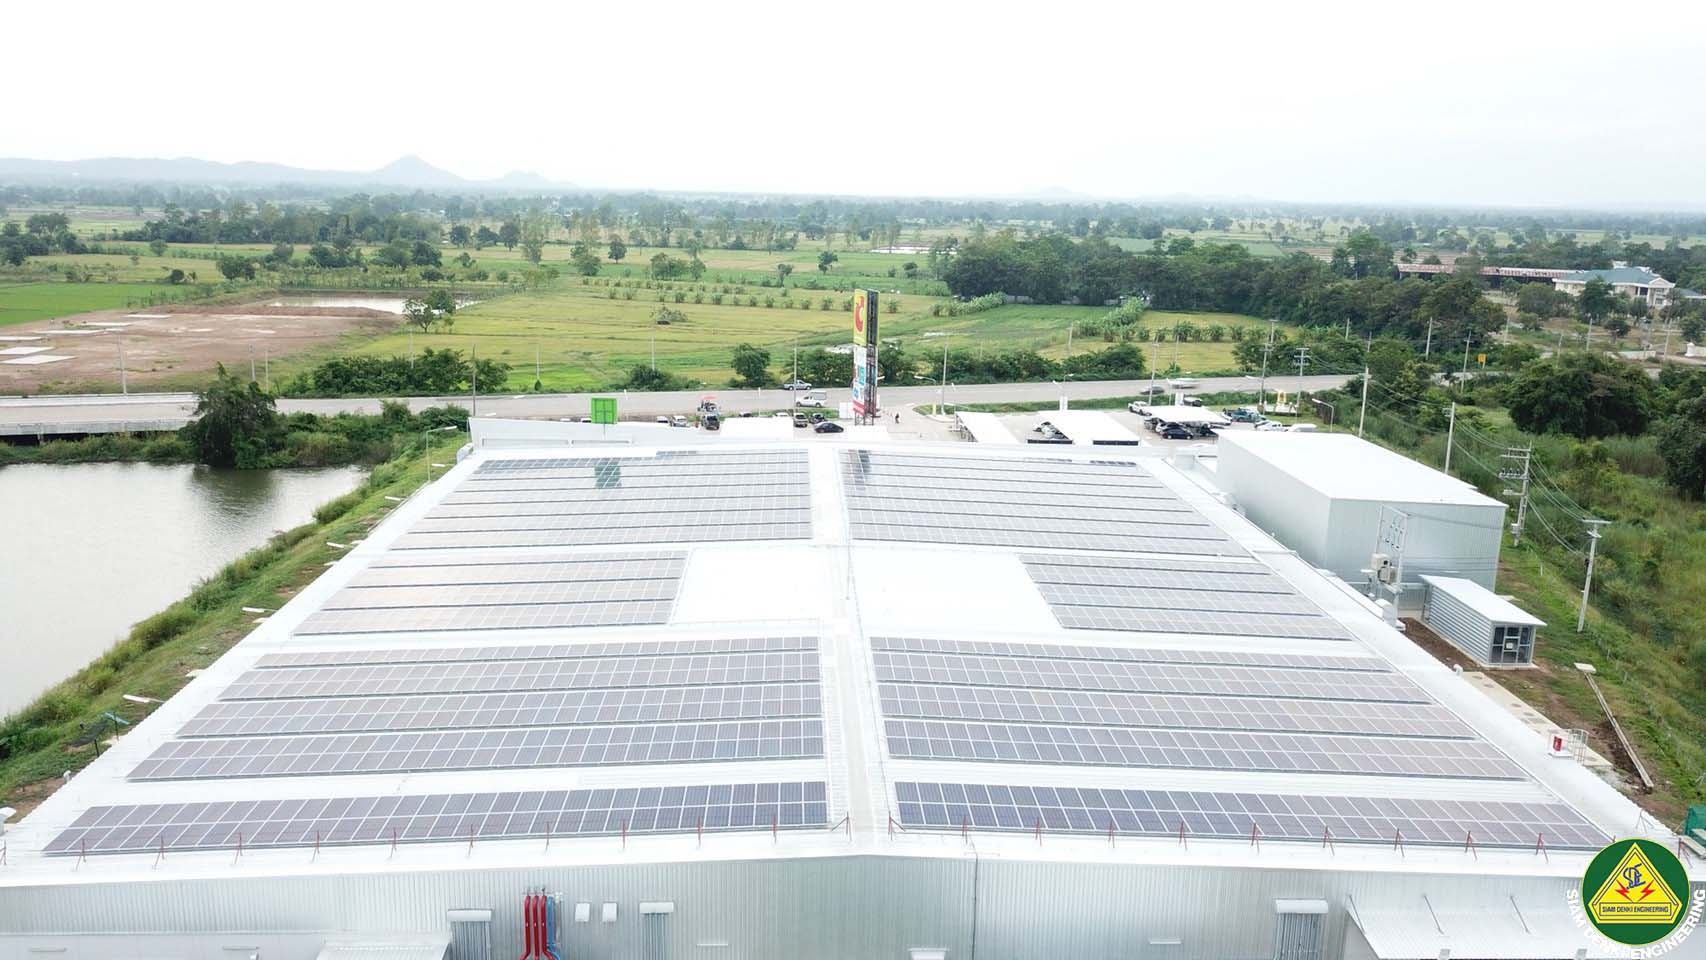 BIG C Solar Rooftop Phase 2.1 (BWCR) Wichienburi Project